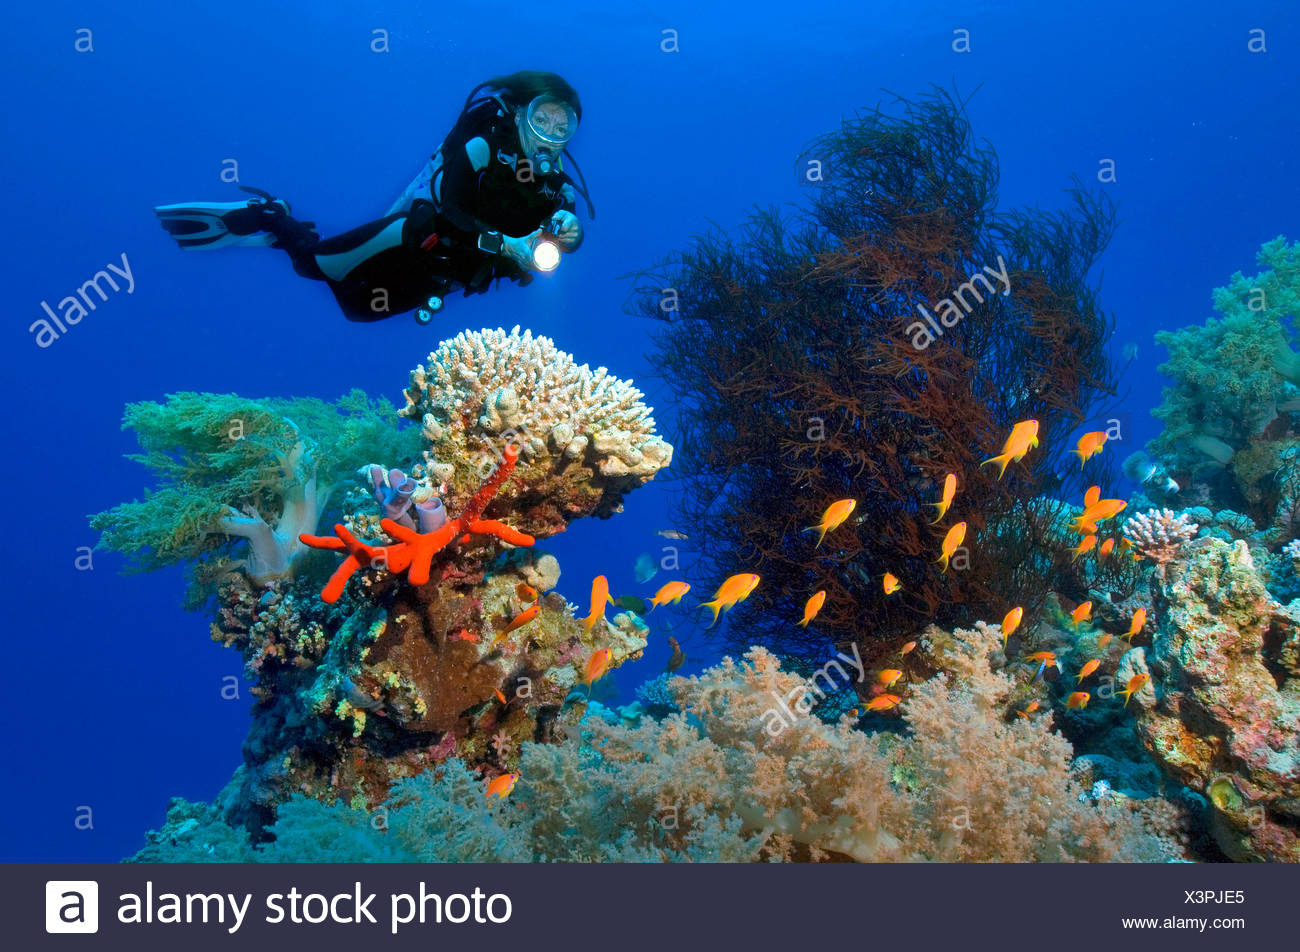 diver at coral reef, black coral, stone coral, softcoral, Lyretail anthias, Jordan, Minor Asia, Red Sea (Antipatharia sp., Acropora sp., Alcyonium sp., Pseudanthias squamipinnis) - Stock Image